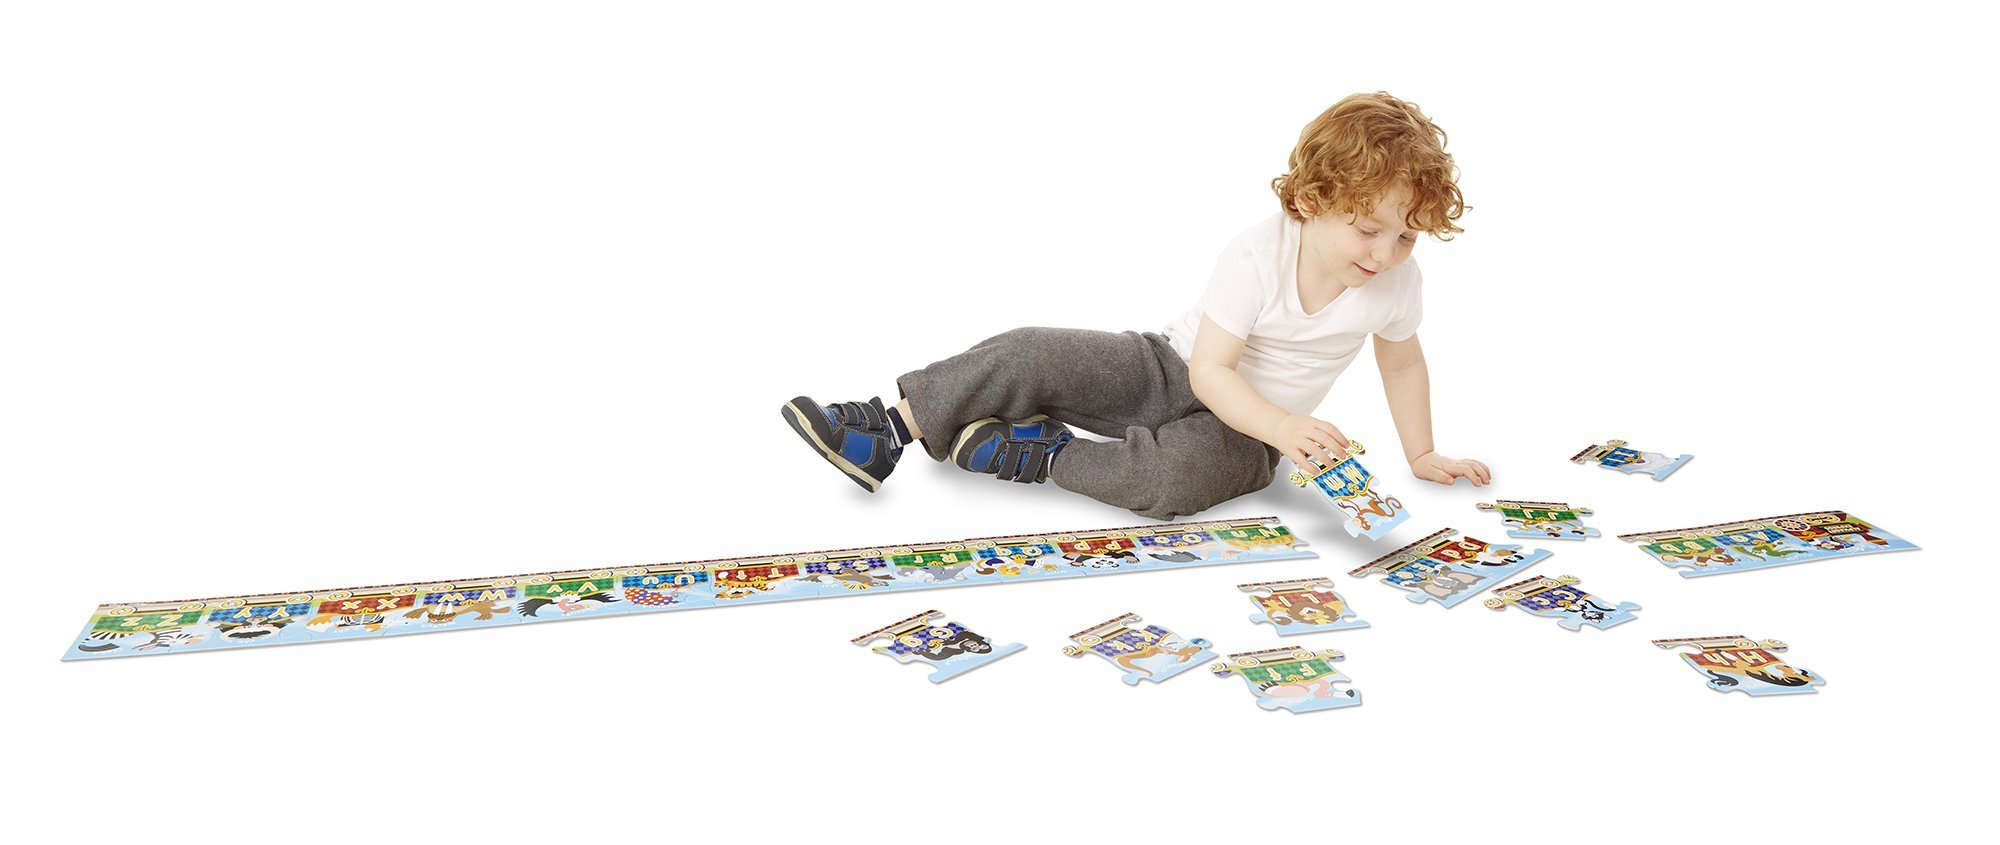 Melissa & Doug Alphabet Express Jumbo Jigsaw Floor Puzzle (27 pcs, 10 feet long) by Melissa & Doug (Image #1)